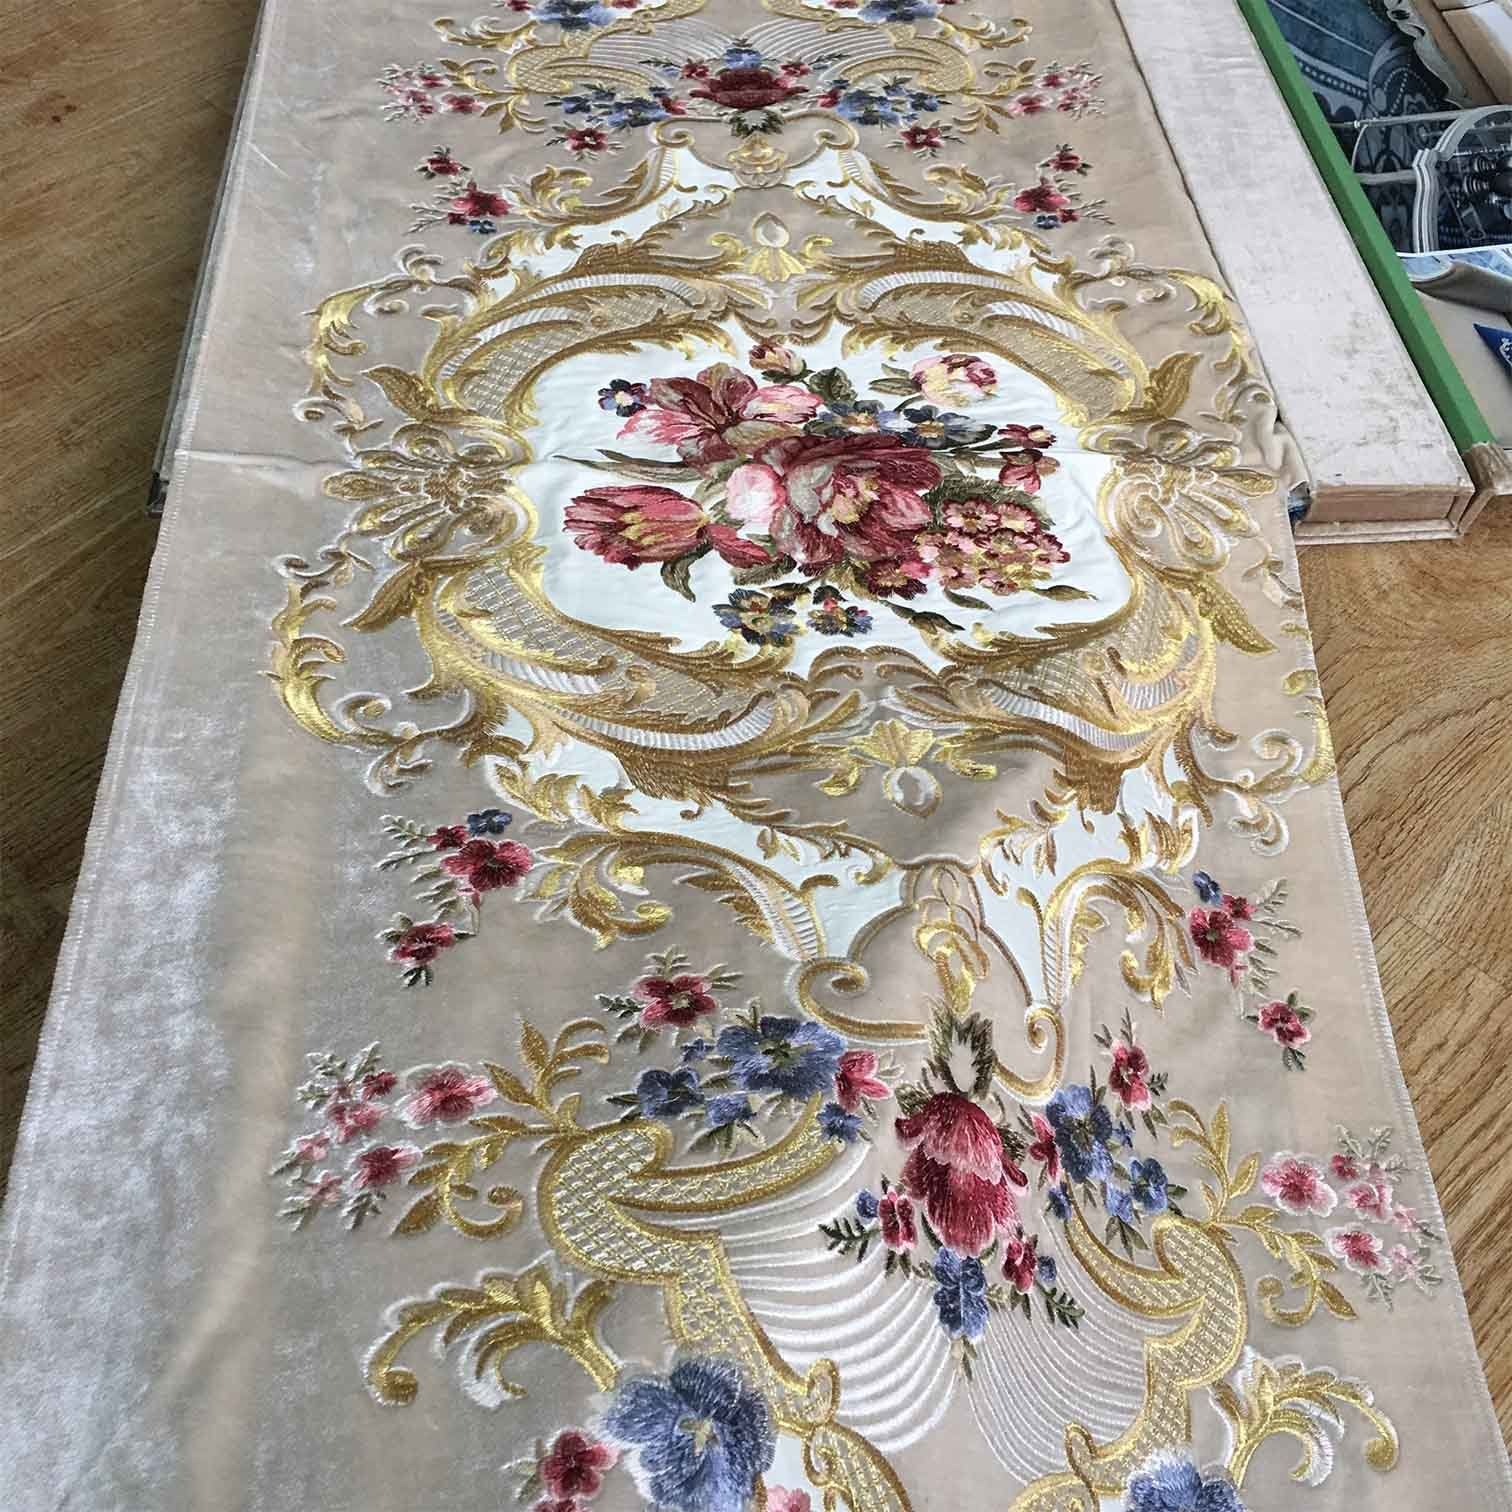 Hot Item Luxury Circle Design Embroidered Velvet Fabric For Sofa Curtain And Upholstery In 2020 Circle Design Upholstery Fabric